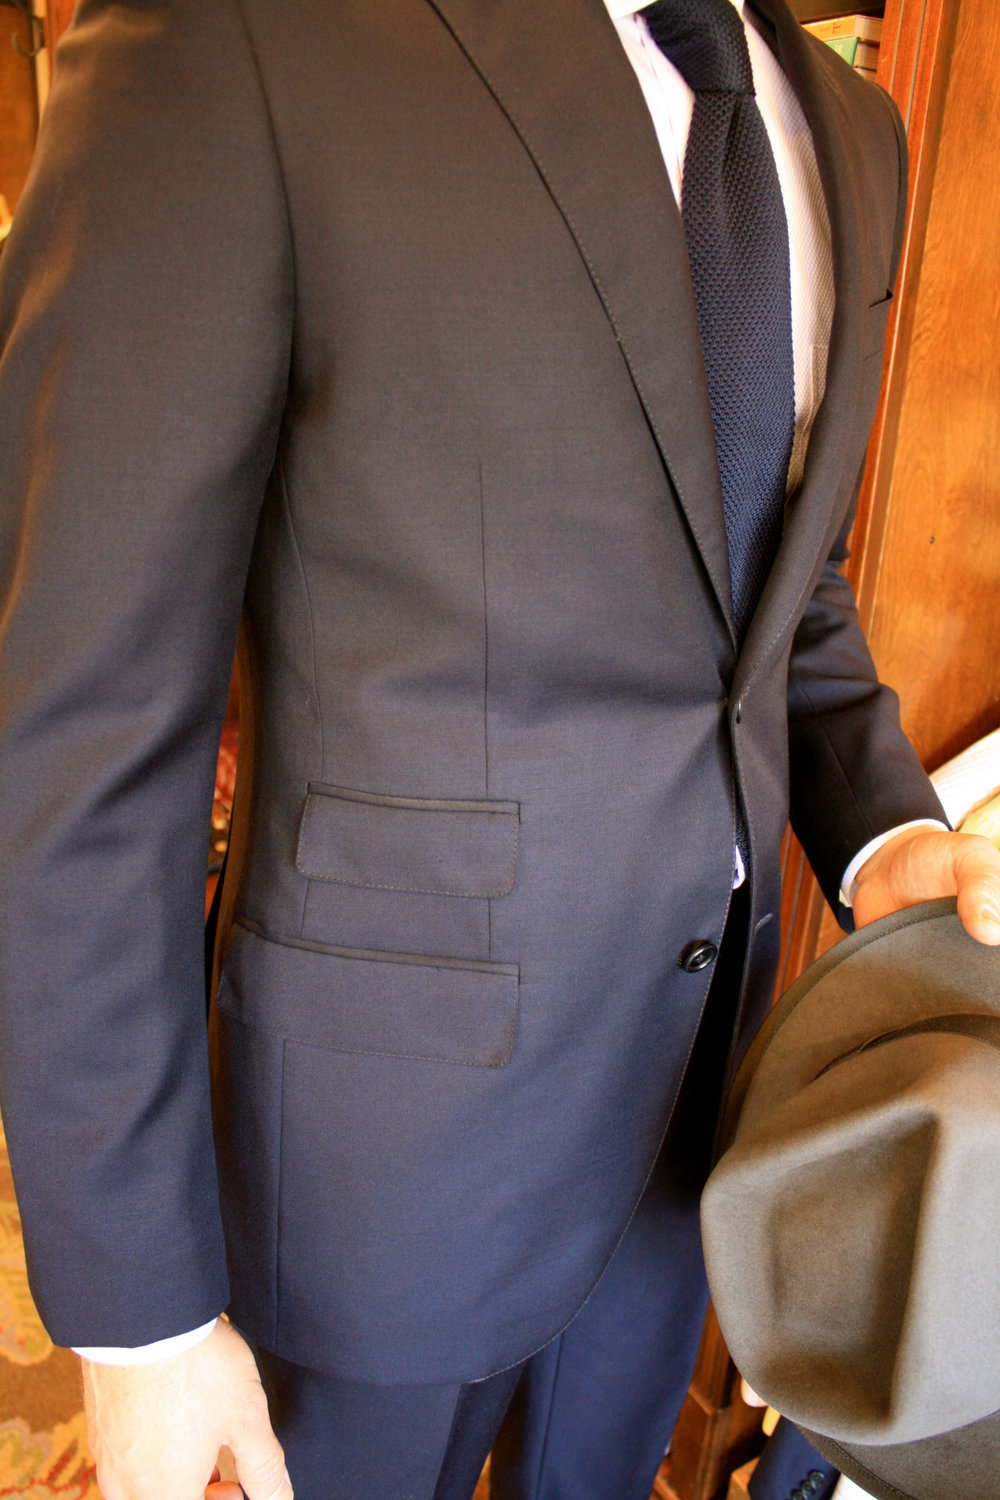 """The Work Horse"" This solid navy suit belongs in every mans wardrobe. We are presenting you with- ""The Work Horse"". Its a year round, super 130's, worsted wool and gaberdine that fits any need from special occasion to board room. A suit in this fabric would normally cost $1,450 but we are offering it for $750 till the end of February. As you know, fit is important to us, so any alteration you may need is complimentary. We are running of stock quickly, come have a look!"